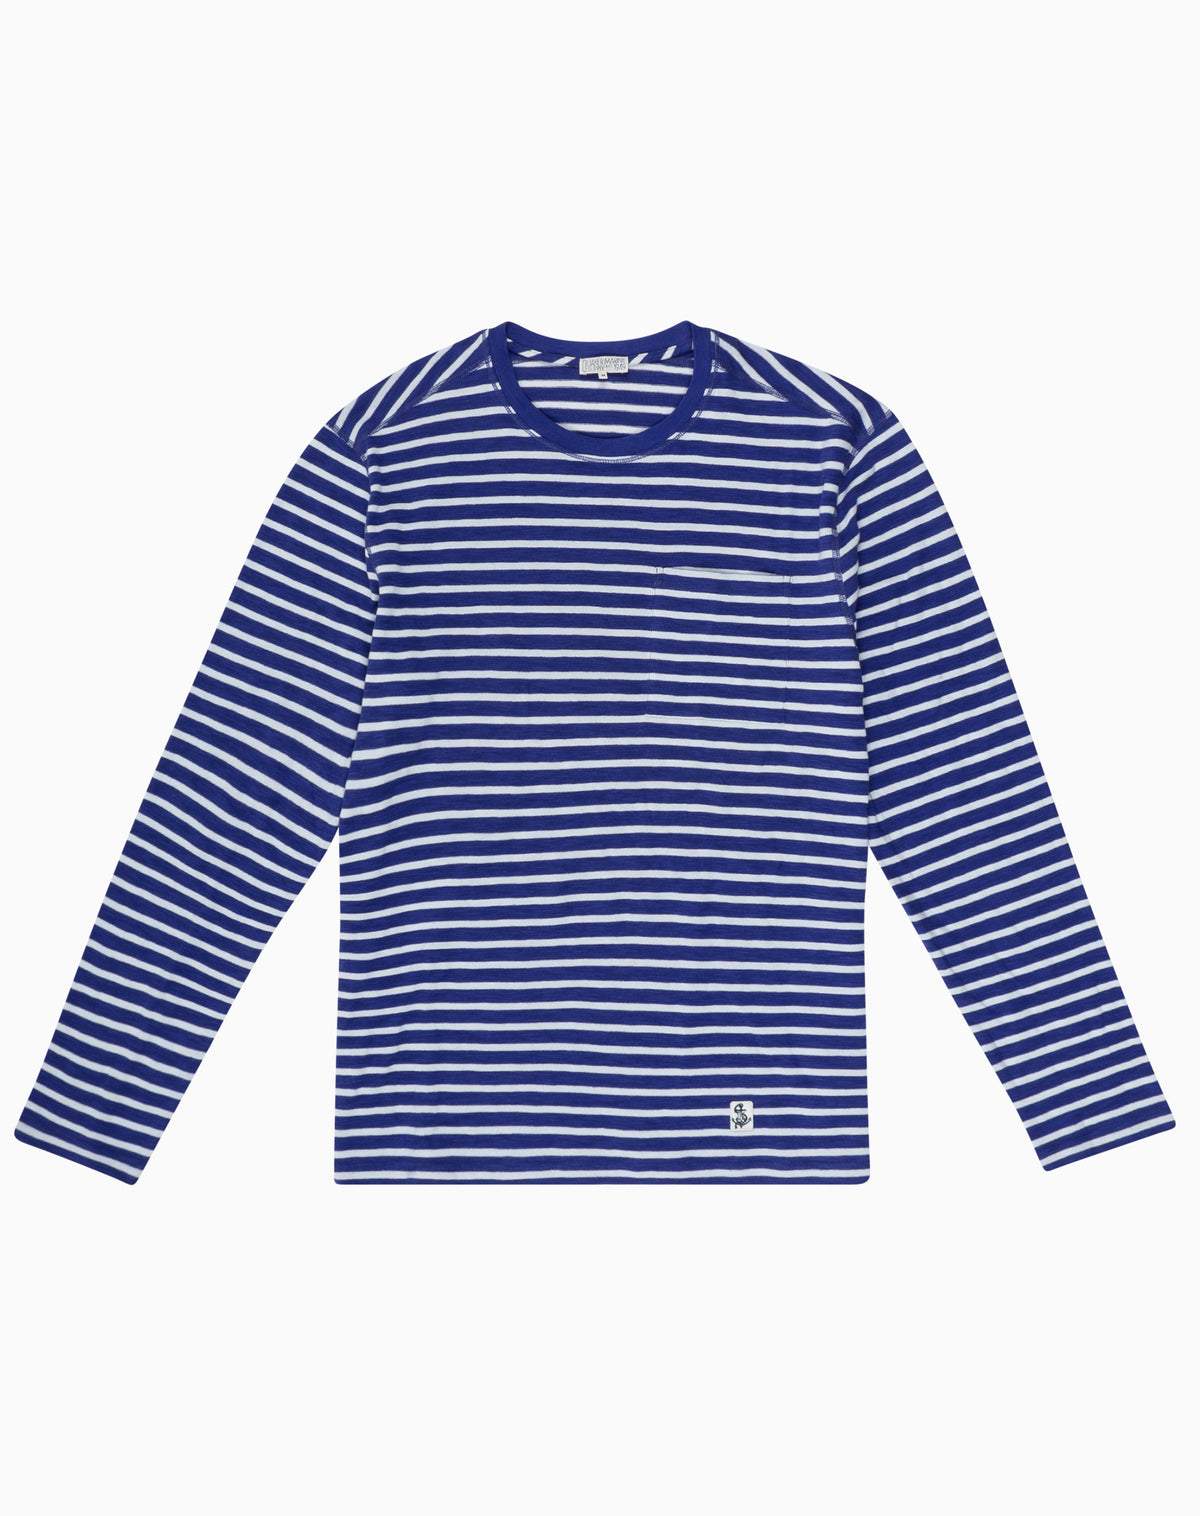 Long Sleeve Striper in Lapis